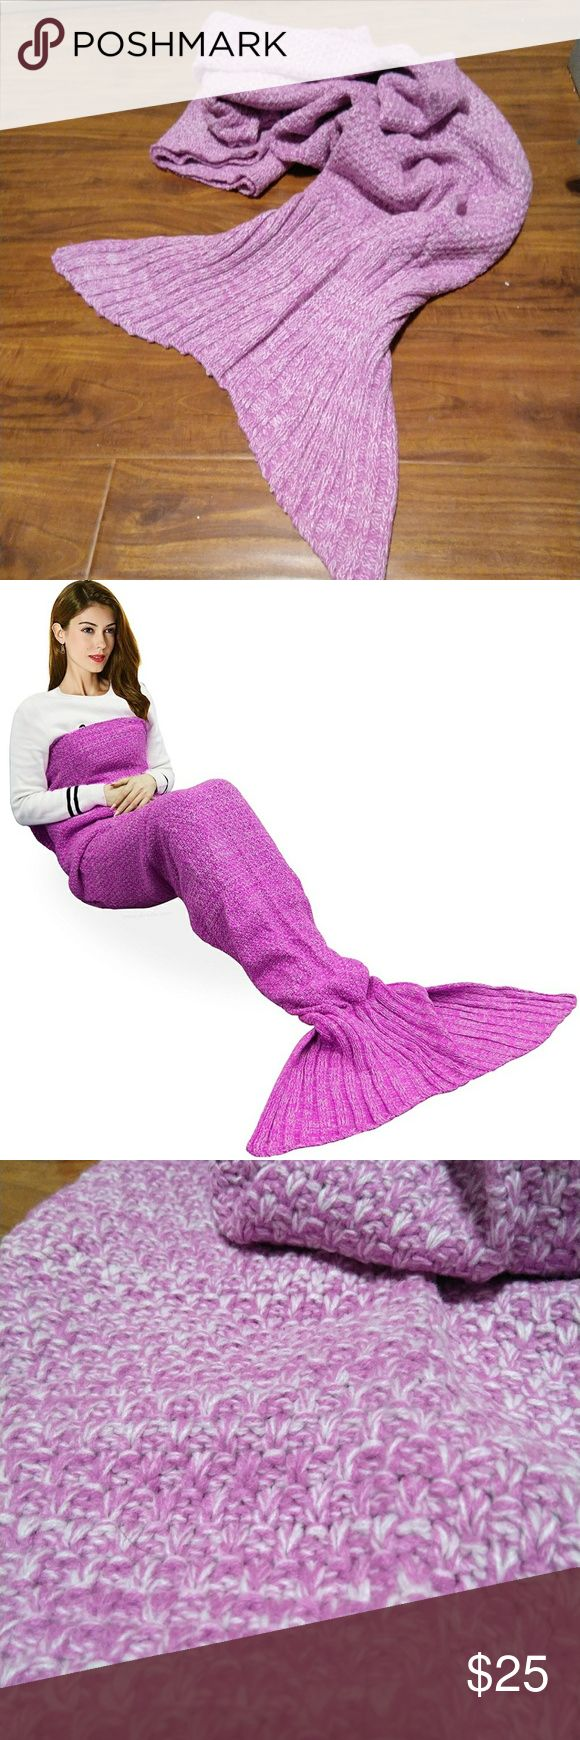 """NWOT Mermaid Pink Purple Crochet Blanket 72.8"""" x 35.5""""  Soft cozy cotton and Acrylic Fibers, Eco-friendly and Skin-friendly perfect for kids and adults  Made of soft cozy cotton and Acrylic Fibers, Eco-friendly and Skin-friendly perfect for kids and adults,Suggest hand washing, or put into the laundry bag to do the machine wash  Highly Versatile: The mermaid tails like a sleeping bag could wiggle your feet into the blanket and keep warm. Great to wrap on the sofa, couch, bed or car for…"""